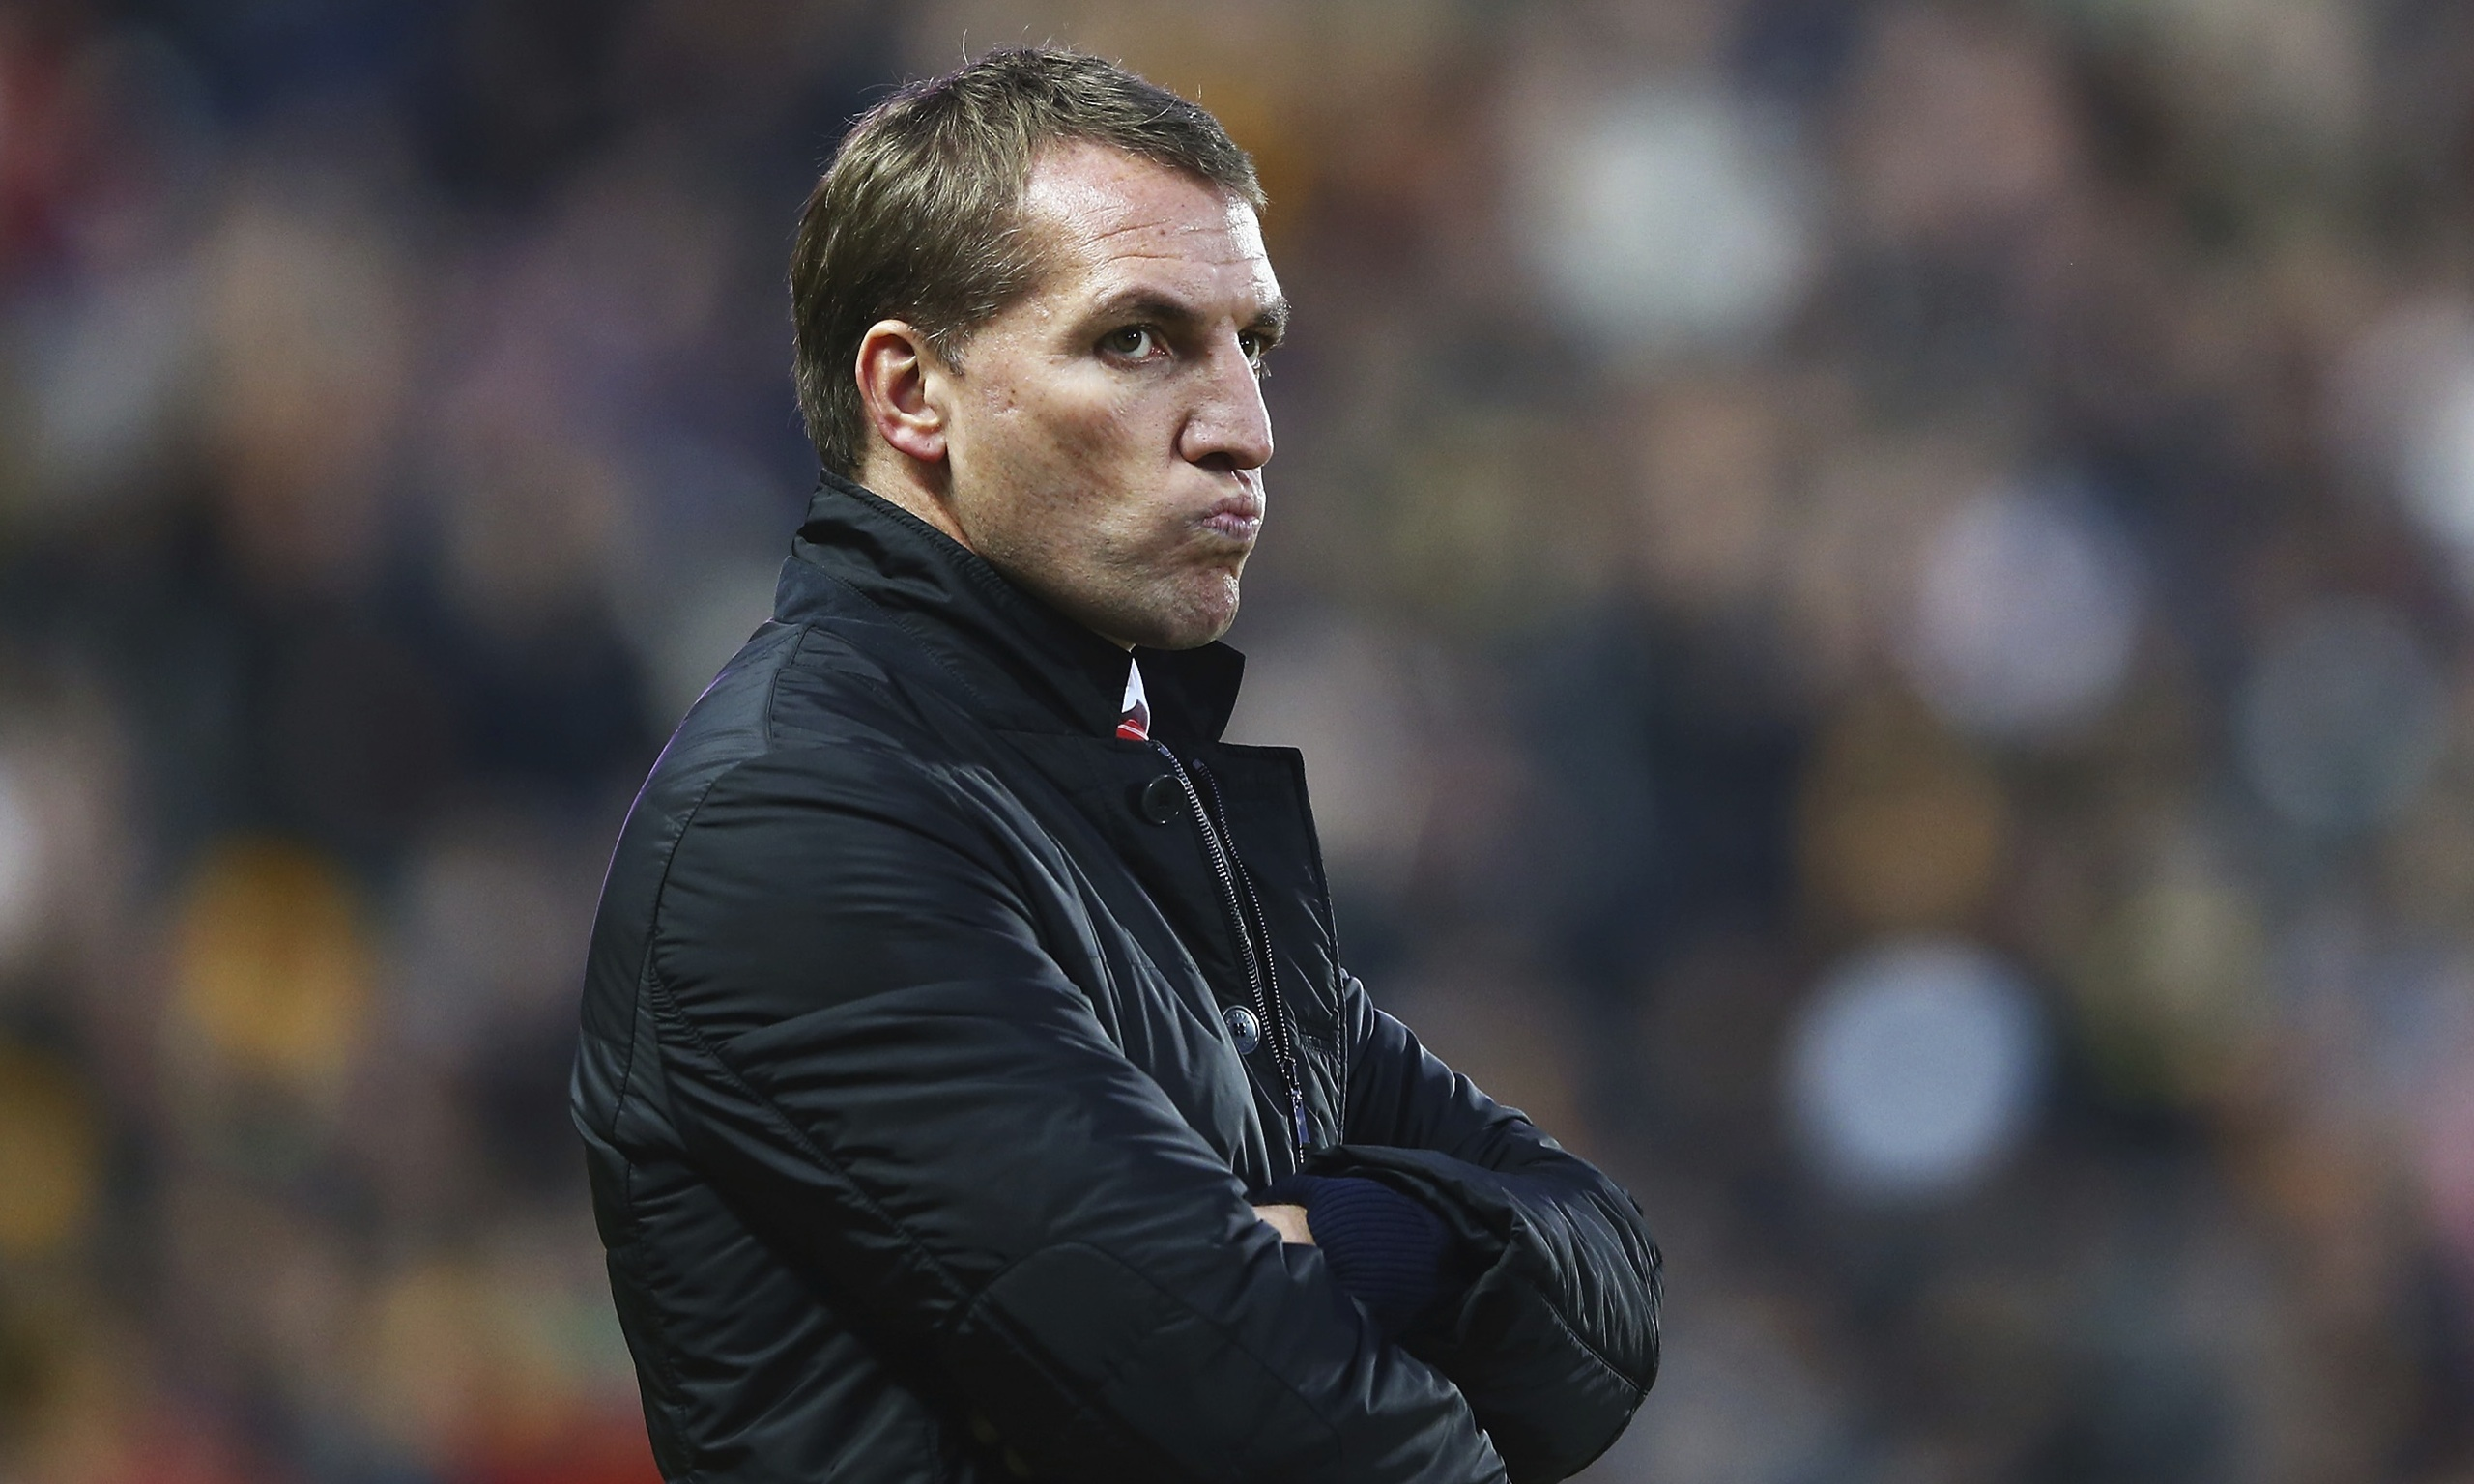 Brendan Rodgers has been on the defensive after the defeat at Hull.